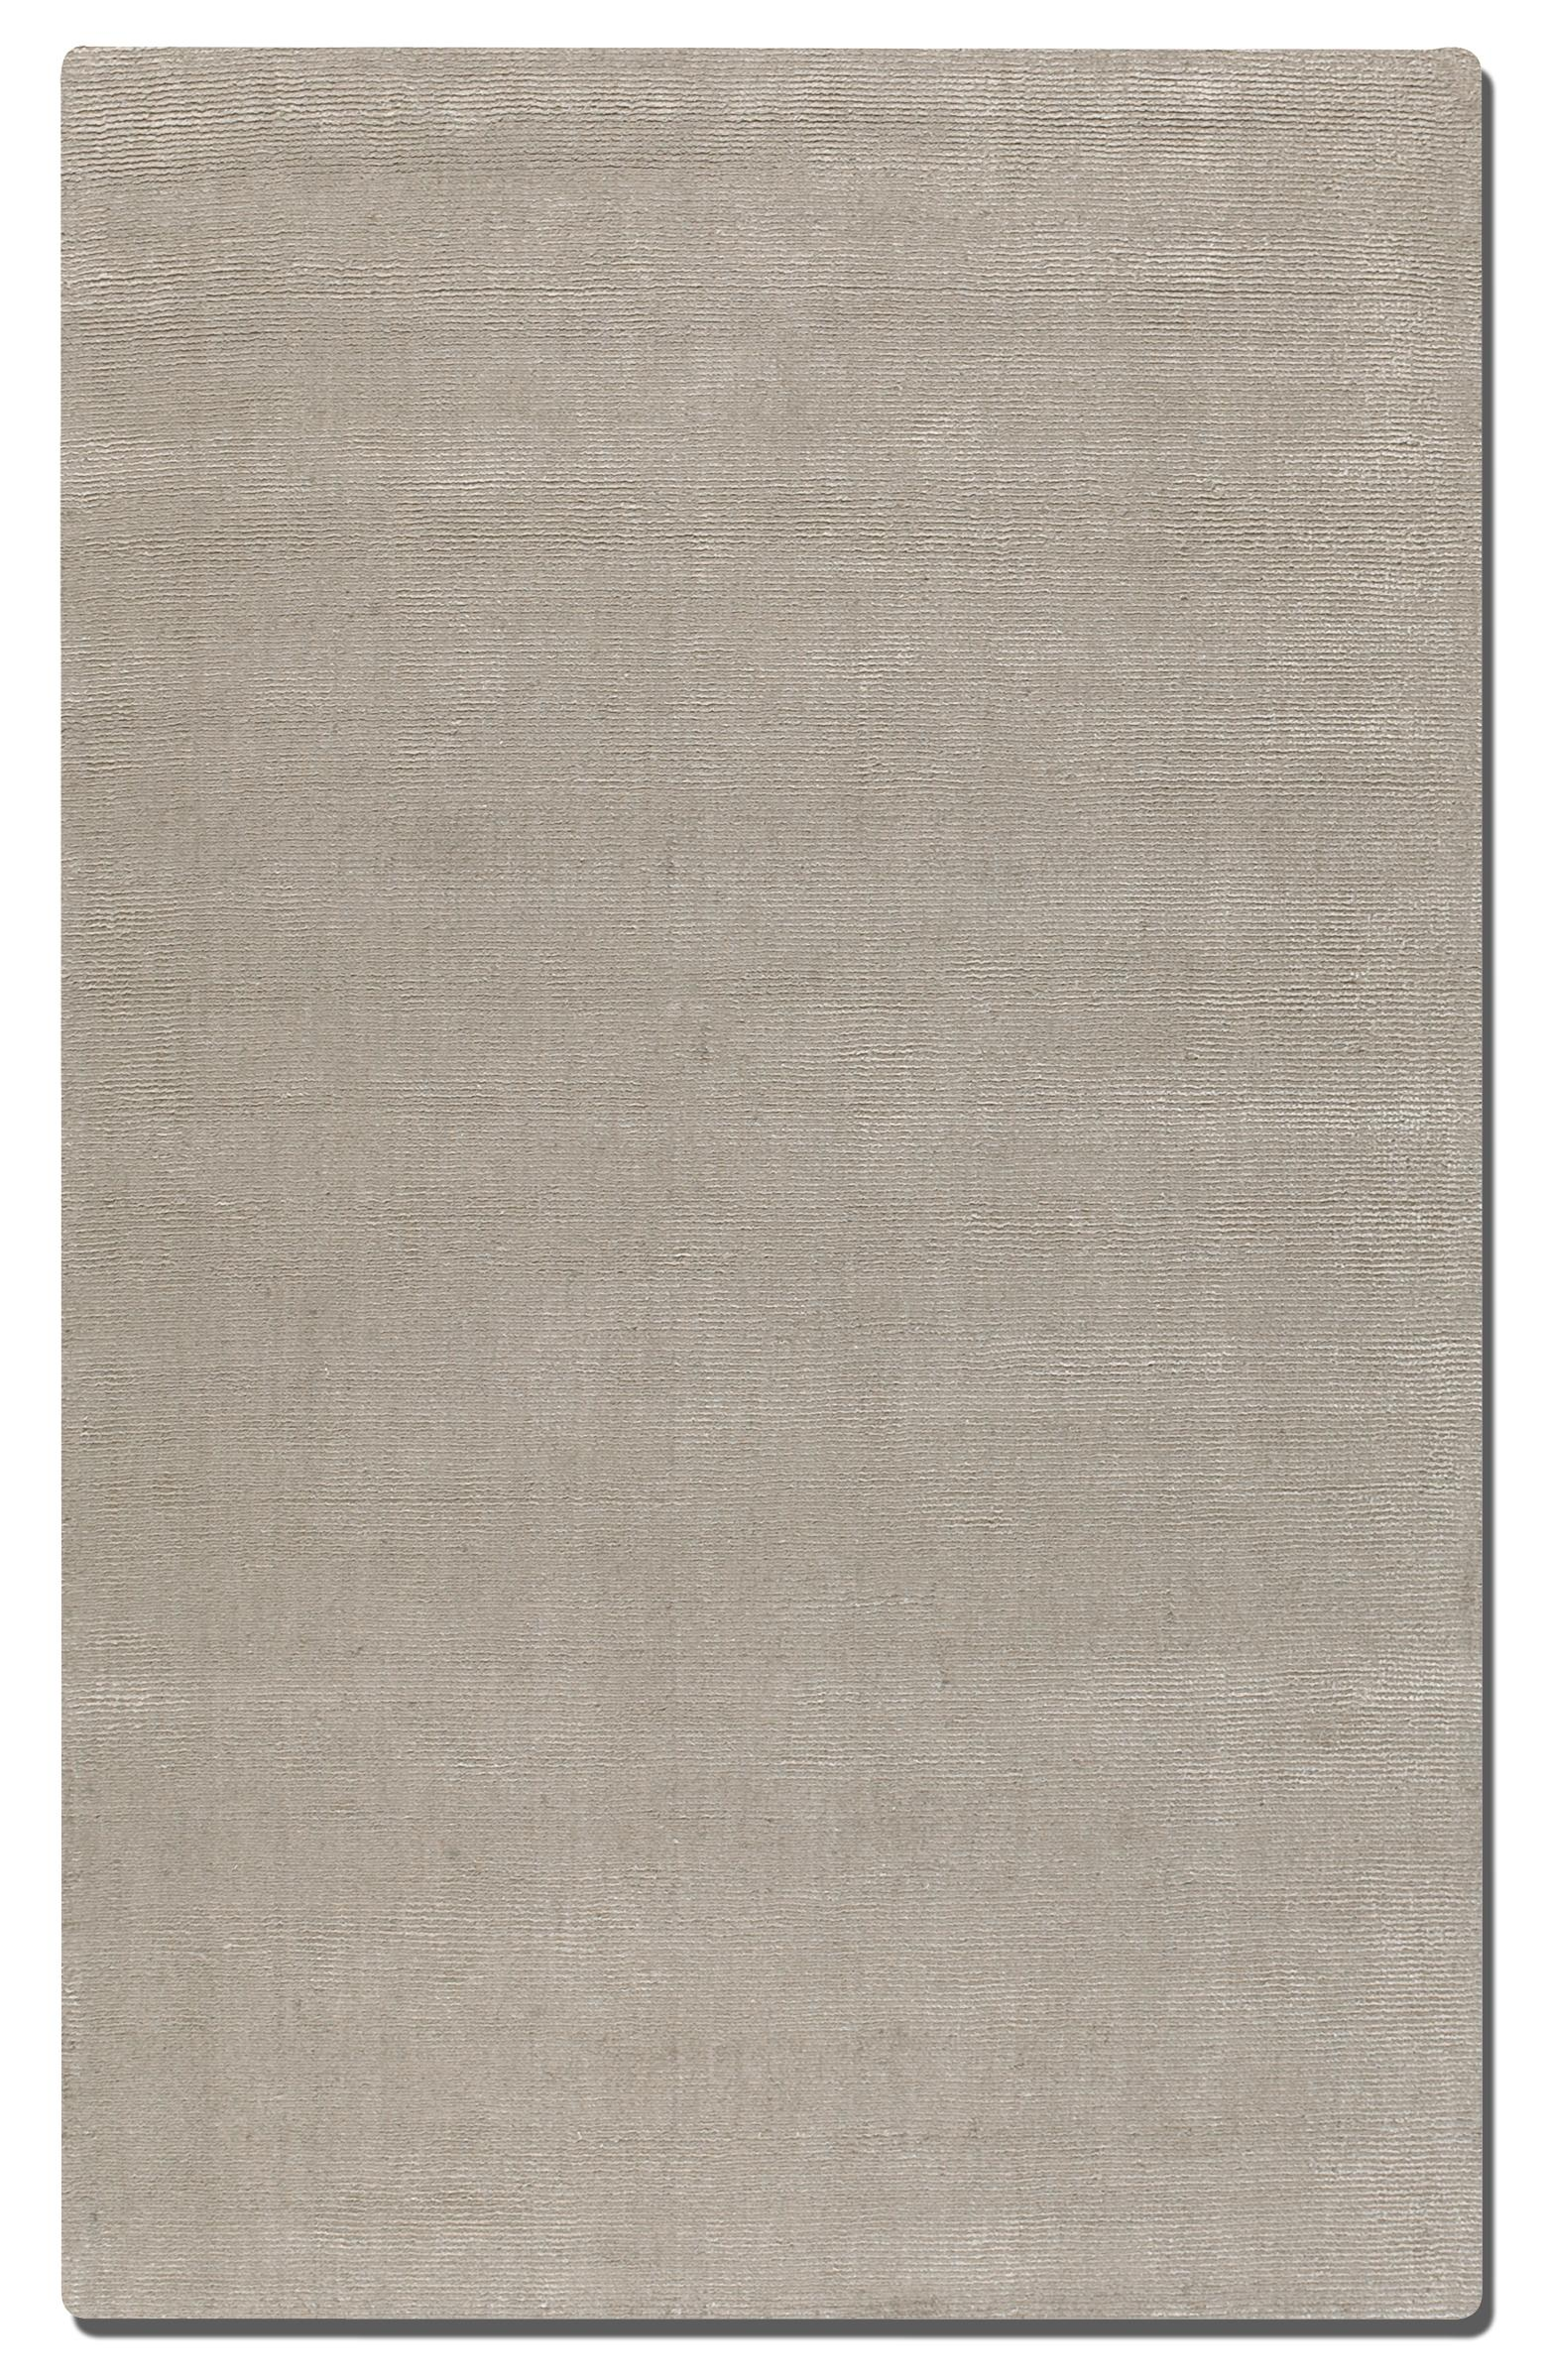 Uttermost Rugs Rhine 9 X 12  - Item Number: 73039-9